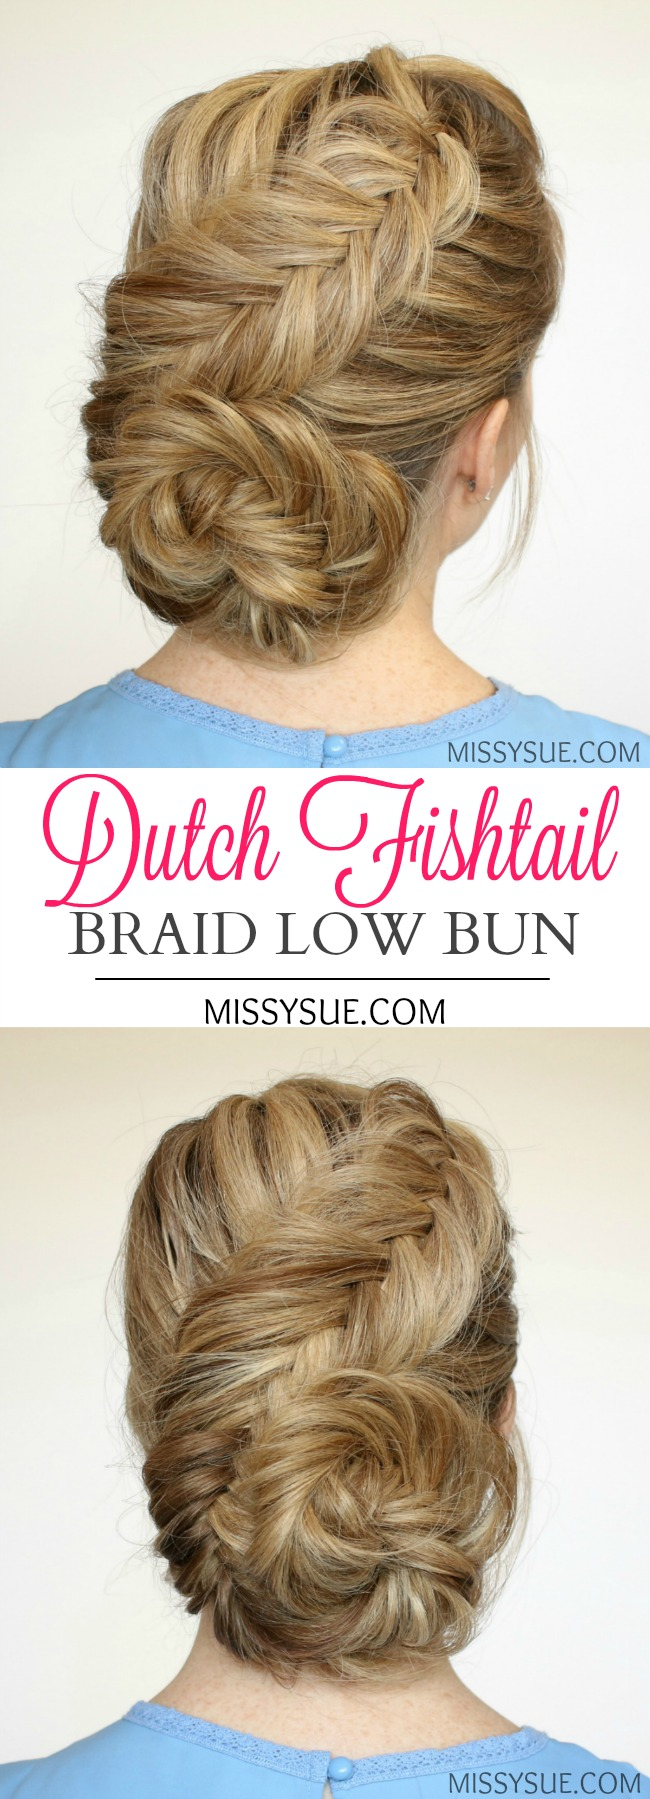 dutch-fishtail-low-bun-tutorial-2